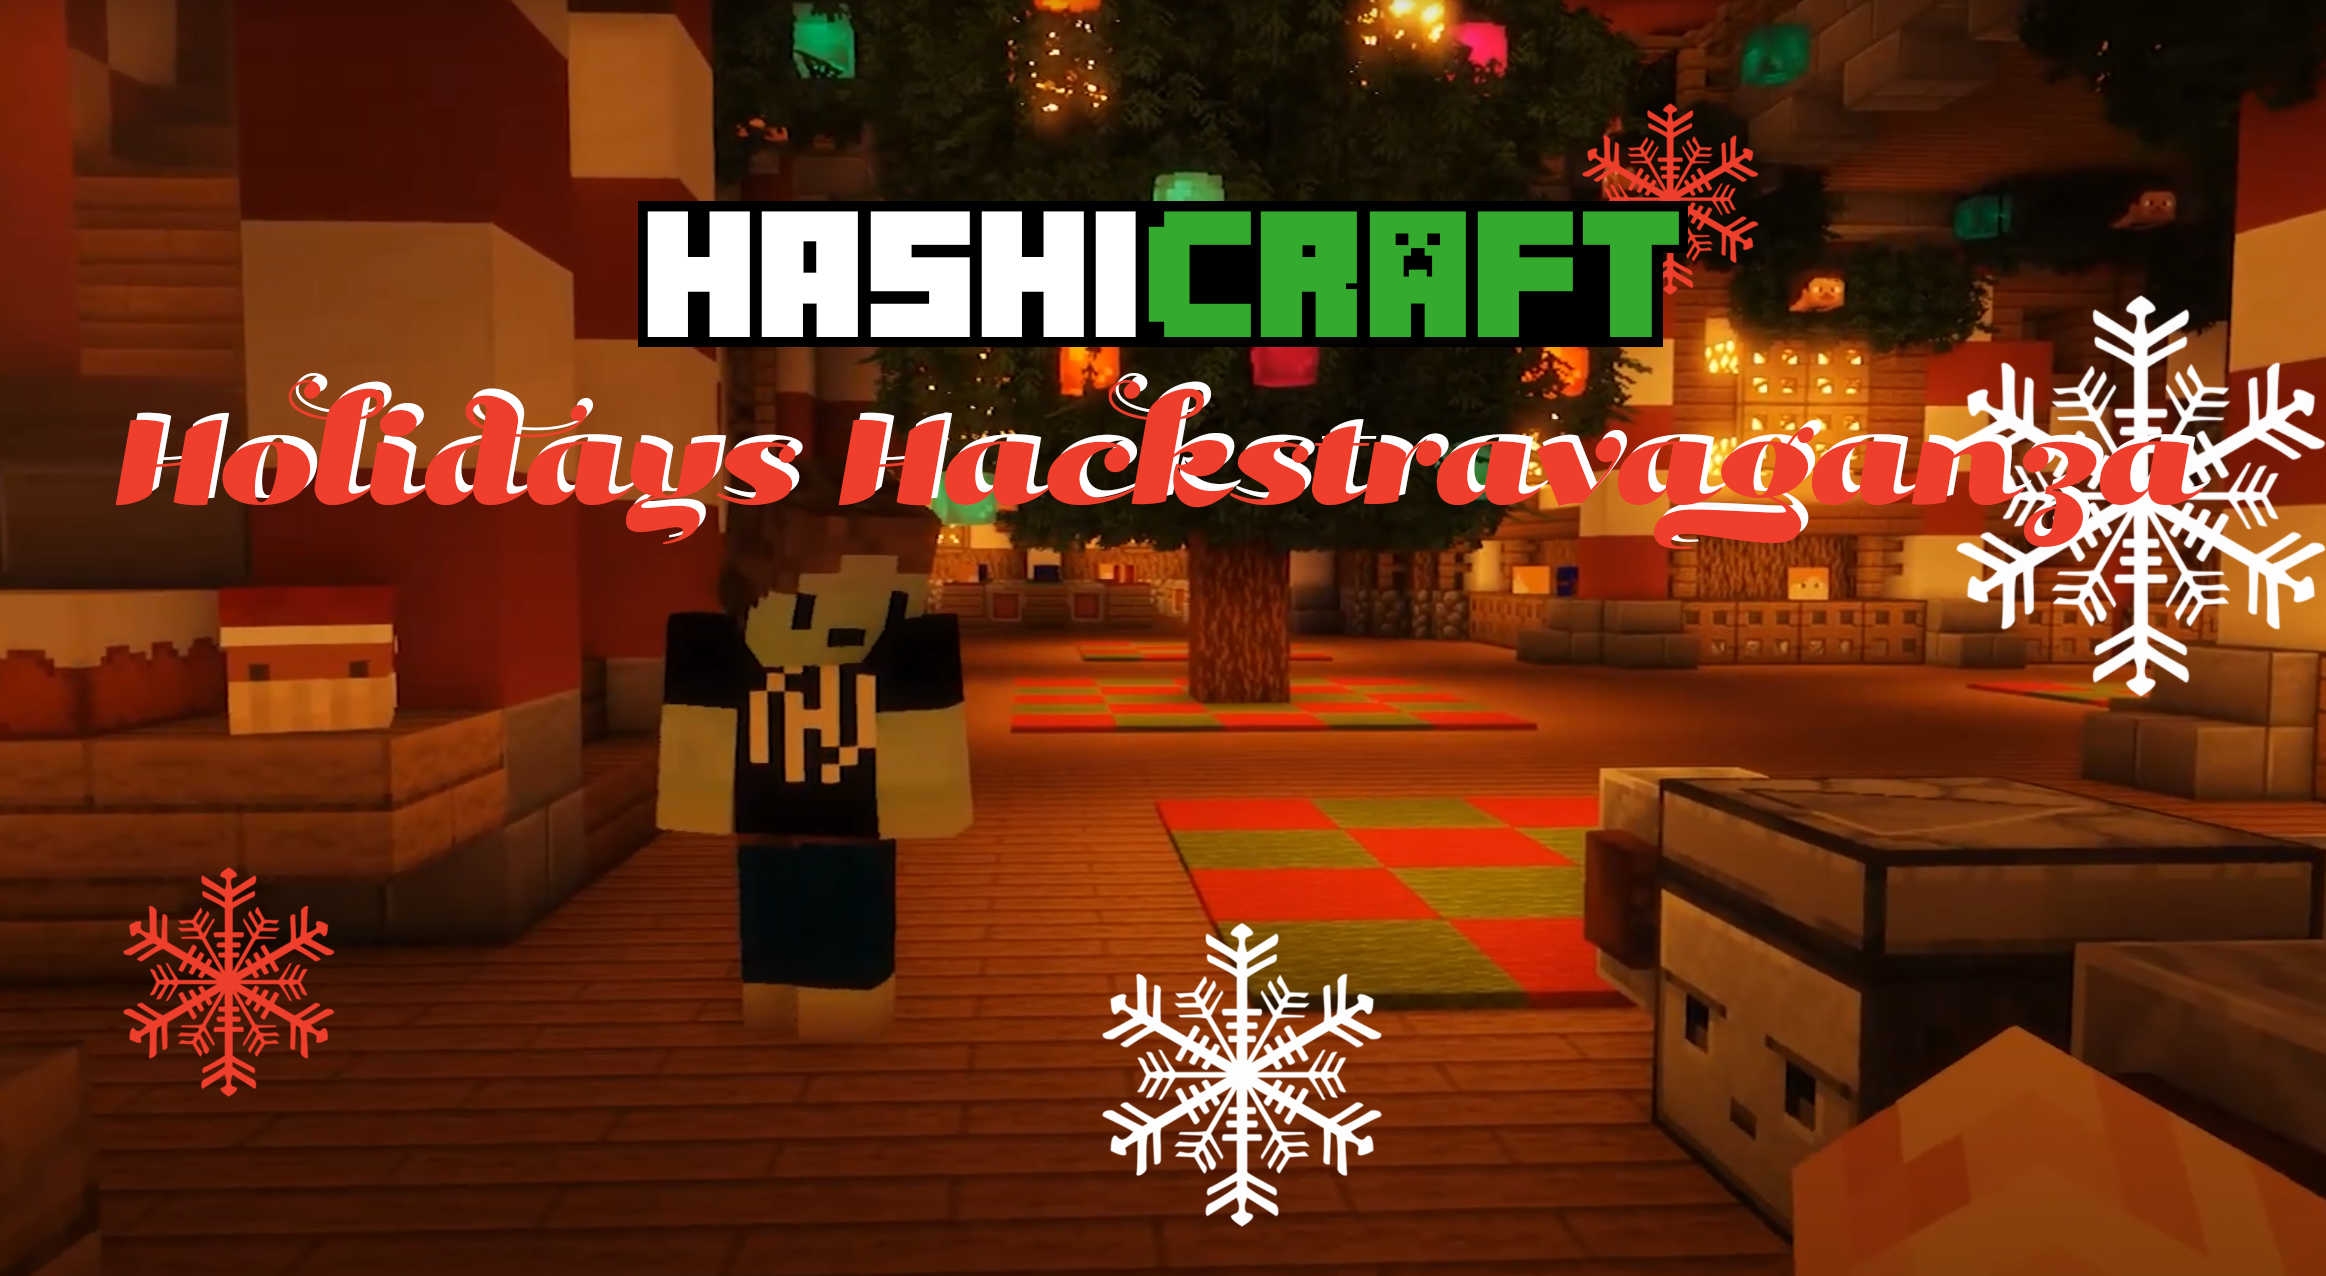 Announcing the HashiCraft Holidays Hackstravaganza